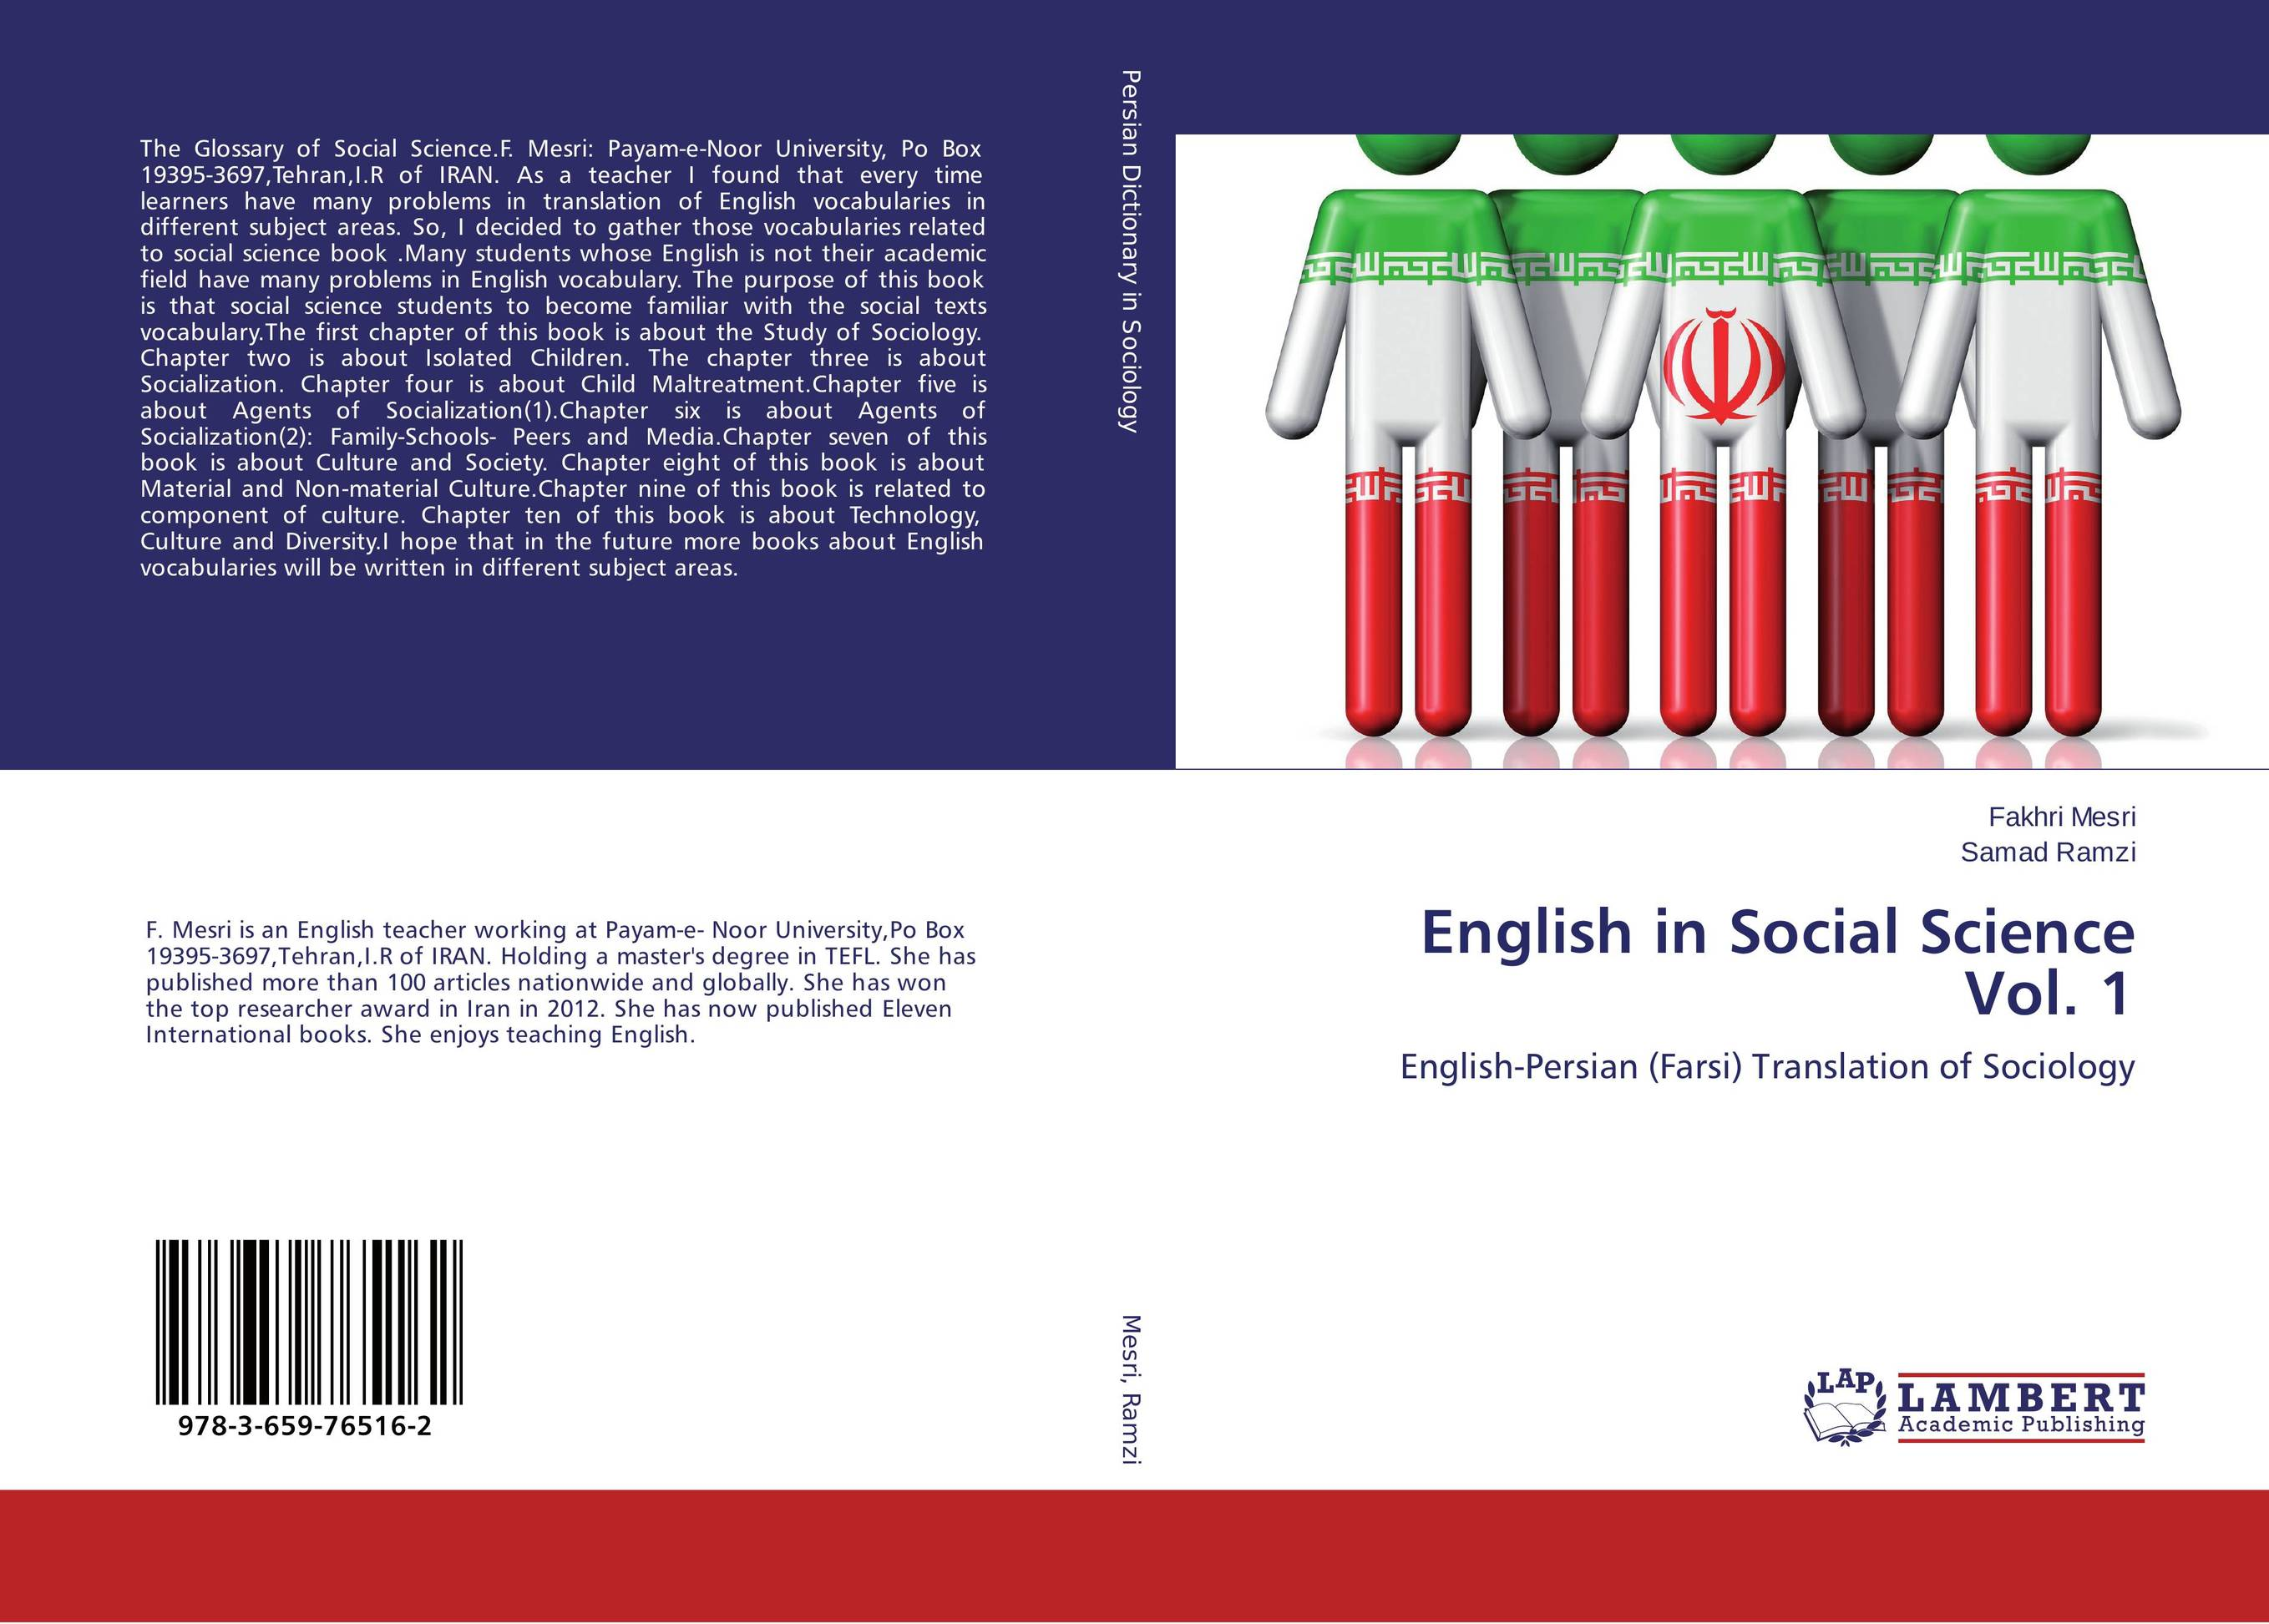 English in Social Science Vol. 1 karff джемпер